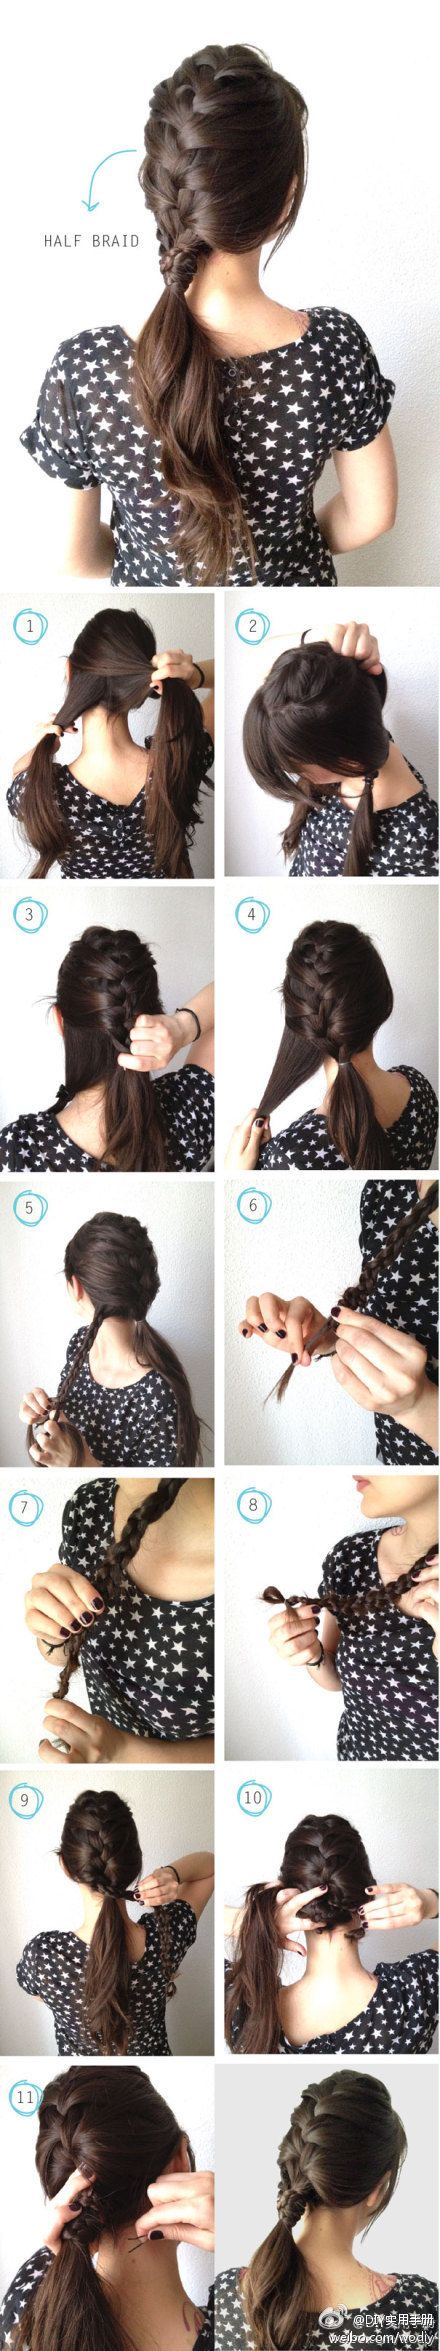 braid half your hair and tie in a ponytail.